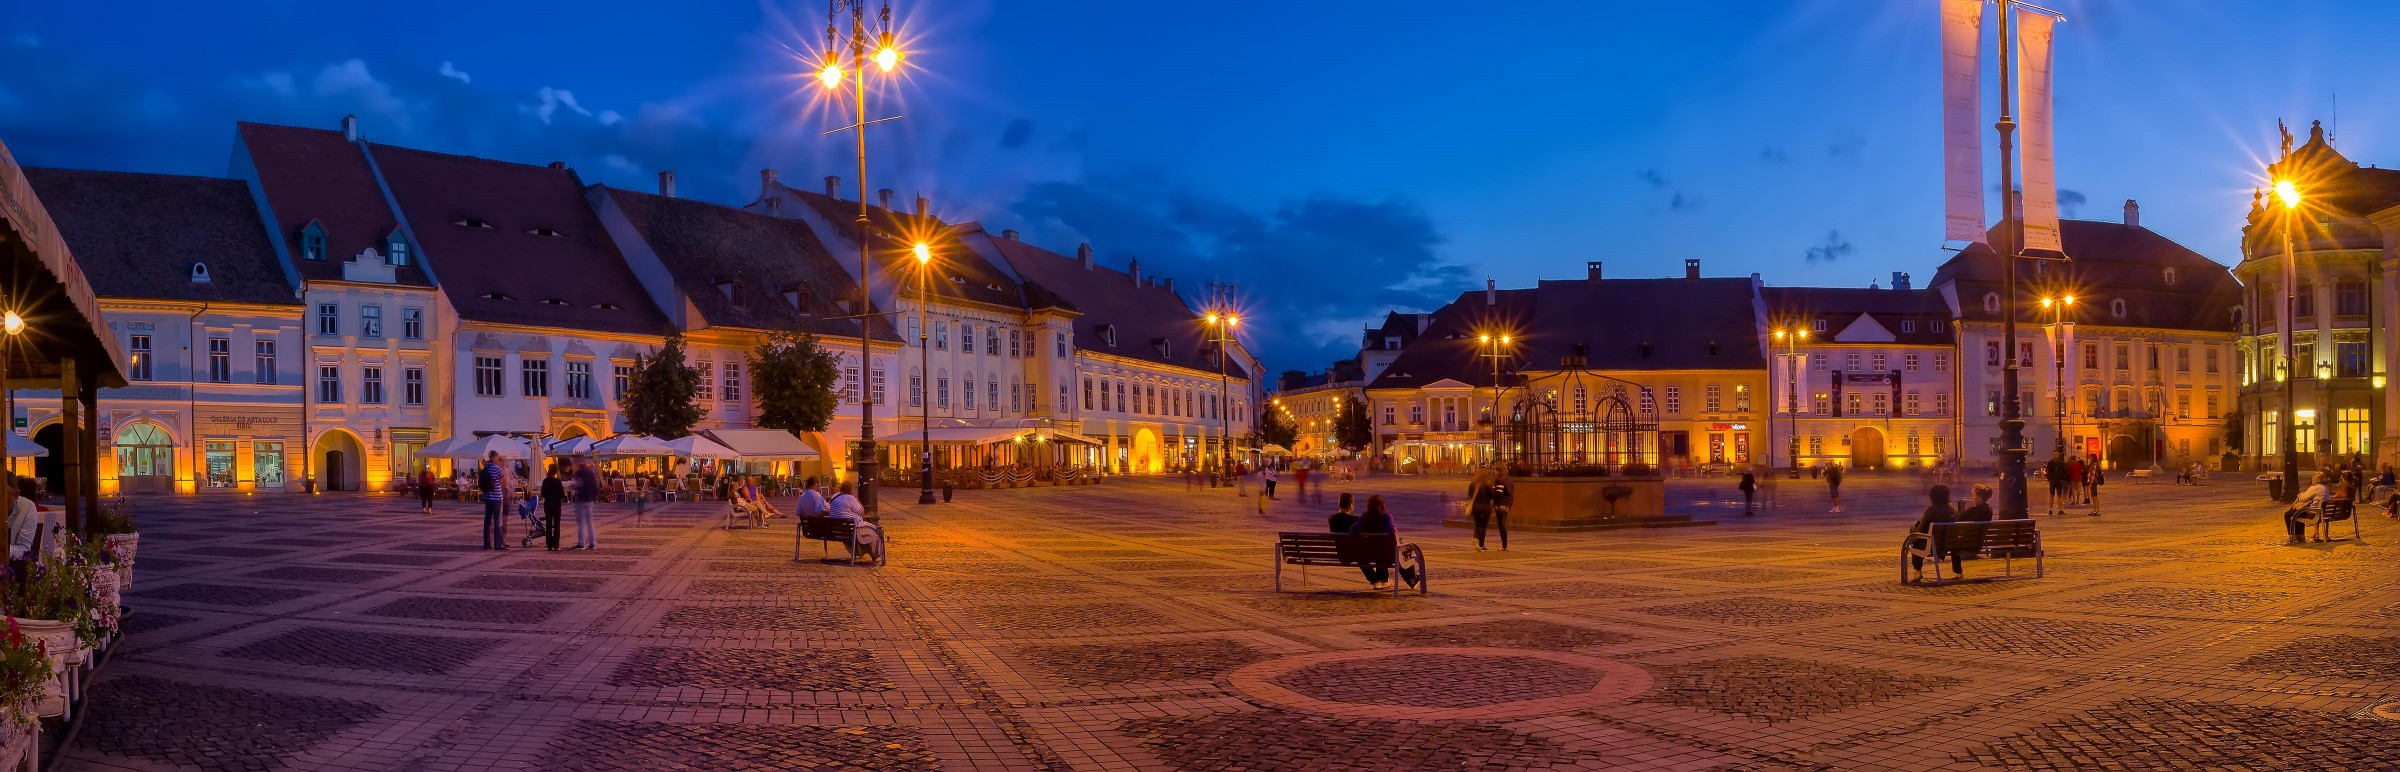 The Grand Square (Piata Mare) of Sibiu, Romania